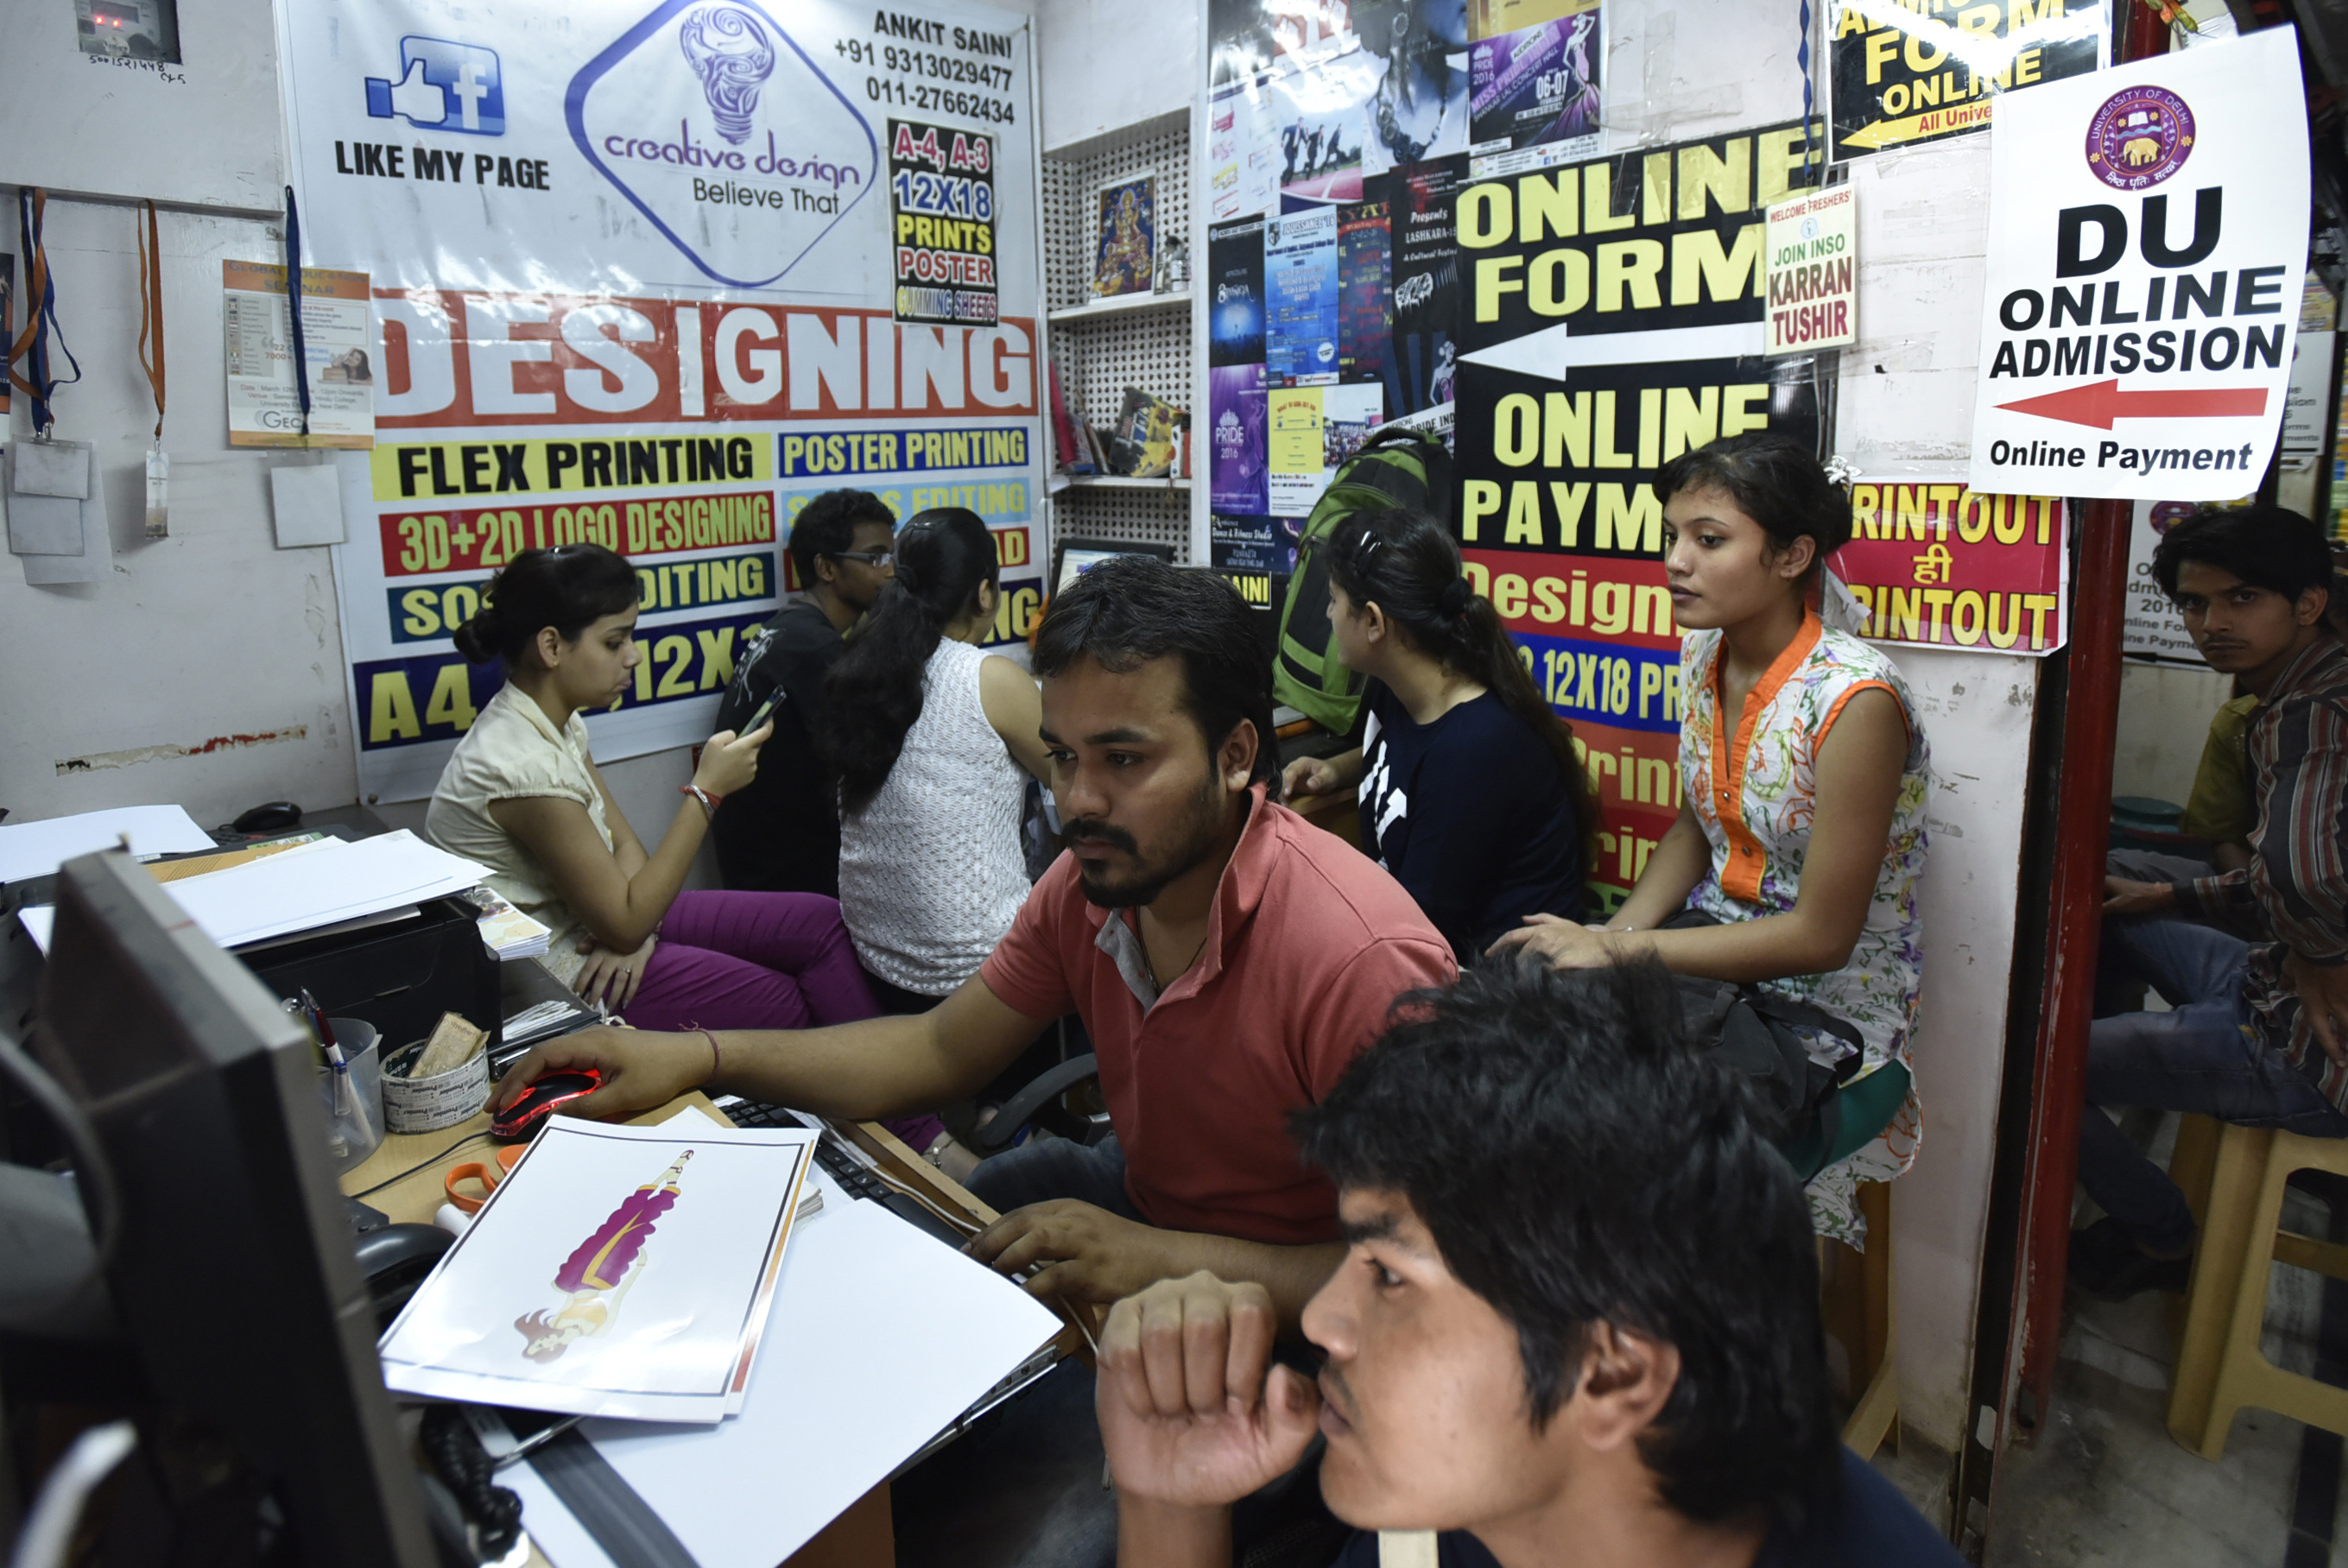 NEW DELHI, INDIA - JUNE 2: Candidates filling online application forms at a cyber cafe near Delhi University on June 2, 2016 in New Delhi, India. The process of admission to over 60,000 seats in Delhi University's undergraduate courses began on its official website du.ac.in. The online registration process started at 12 noon and will continue till June 19. The first cut-off list will be announced on June 27 and unlike previous year, the DU will release only five cut-off lists. Students just need to log into the website, register and fill the application form. (Photo by Arun Sharma/Hindustan Times via Getty Images)